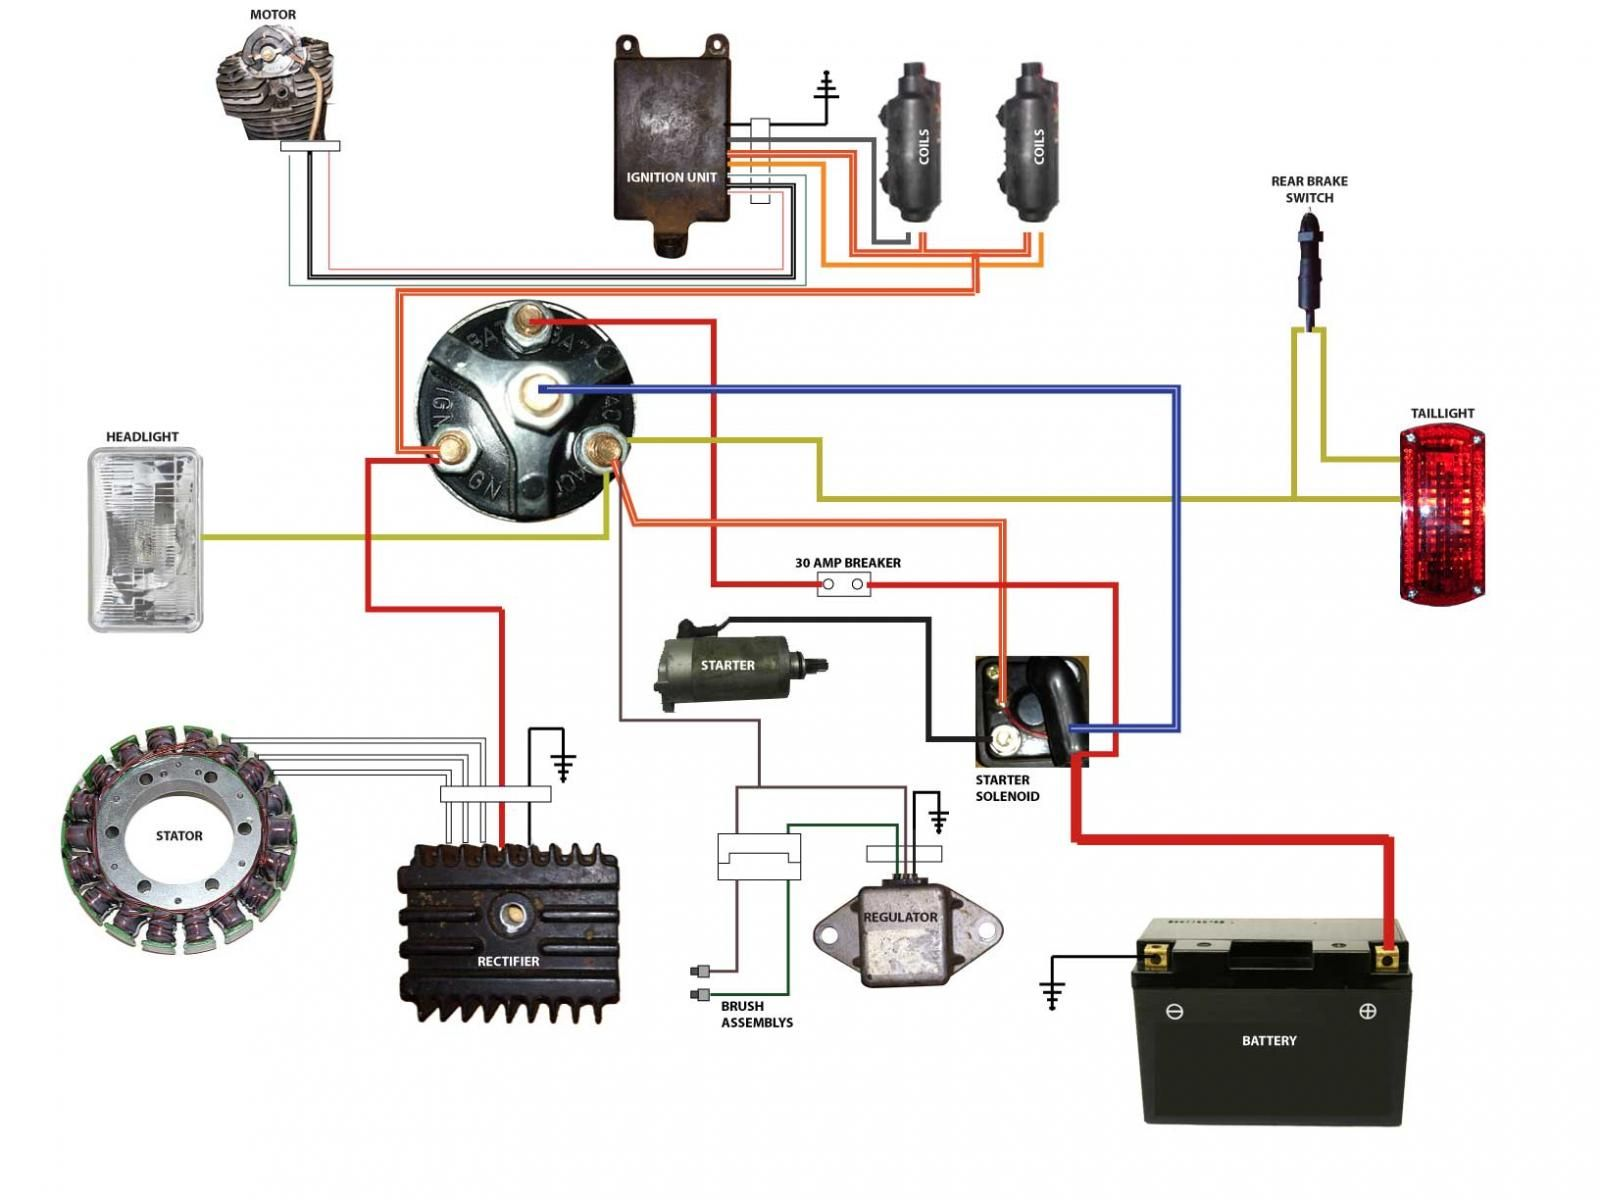 d72b6b9978ded4378b16620a38821410 simplified wiring diagram for xs400 cafe motorcycle wiring XS400 Forum at highcare.asia